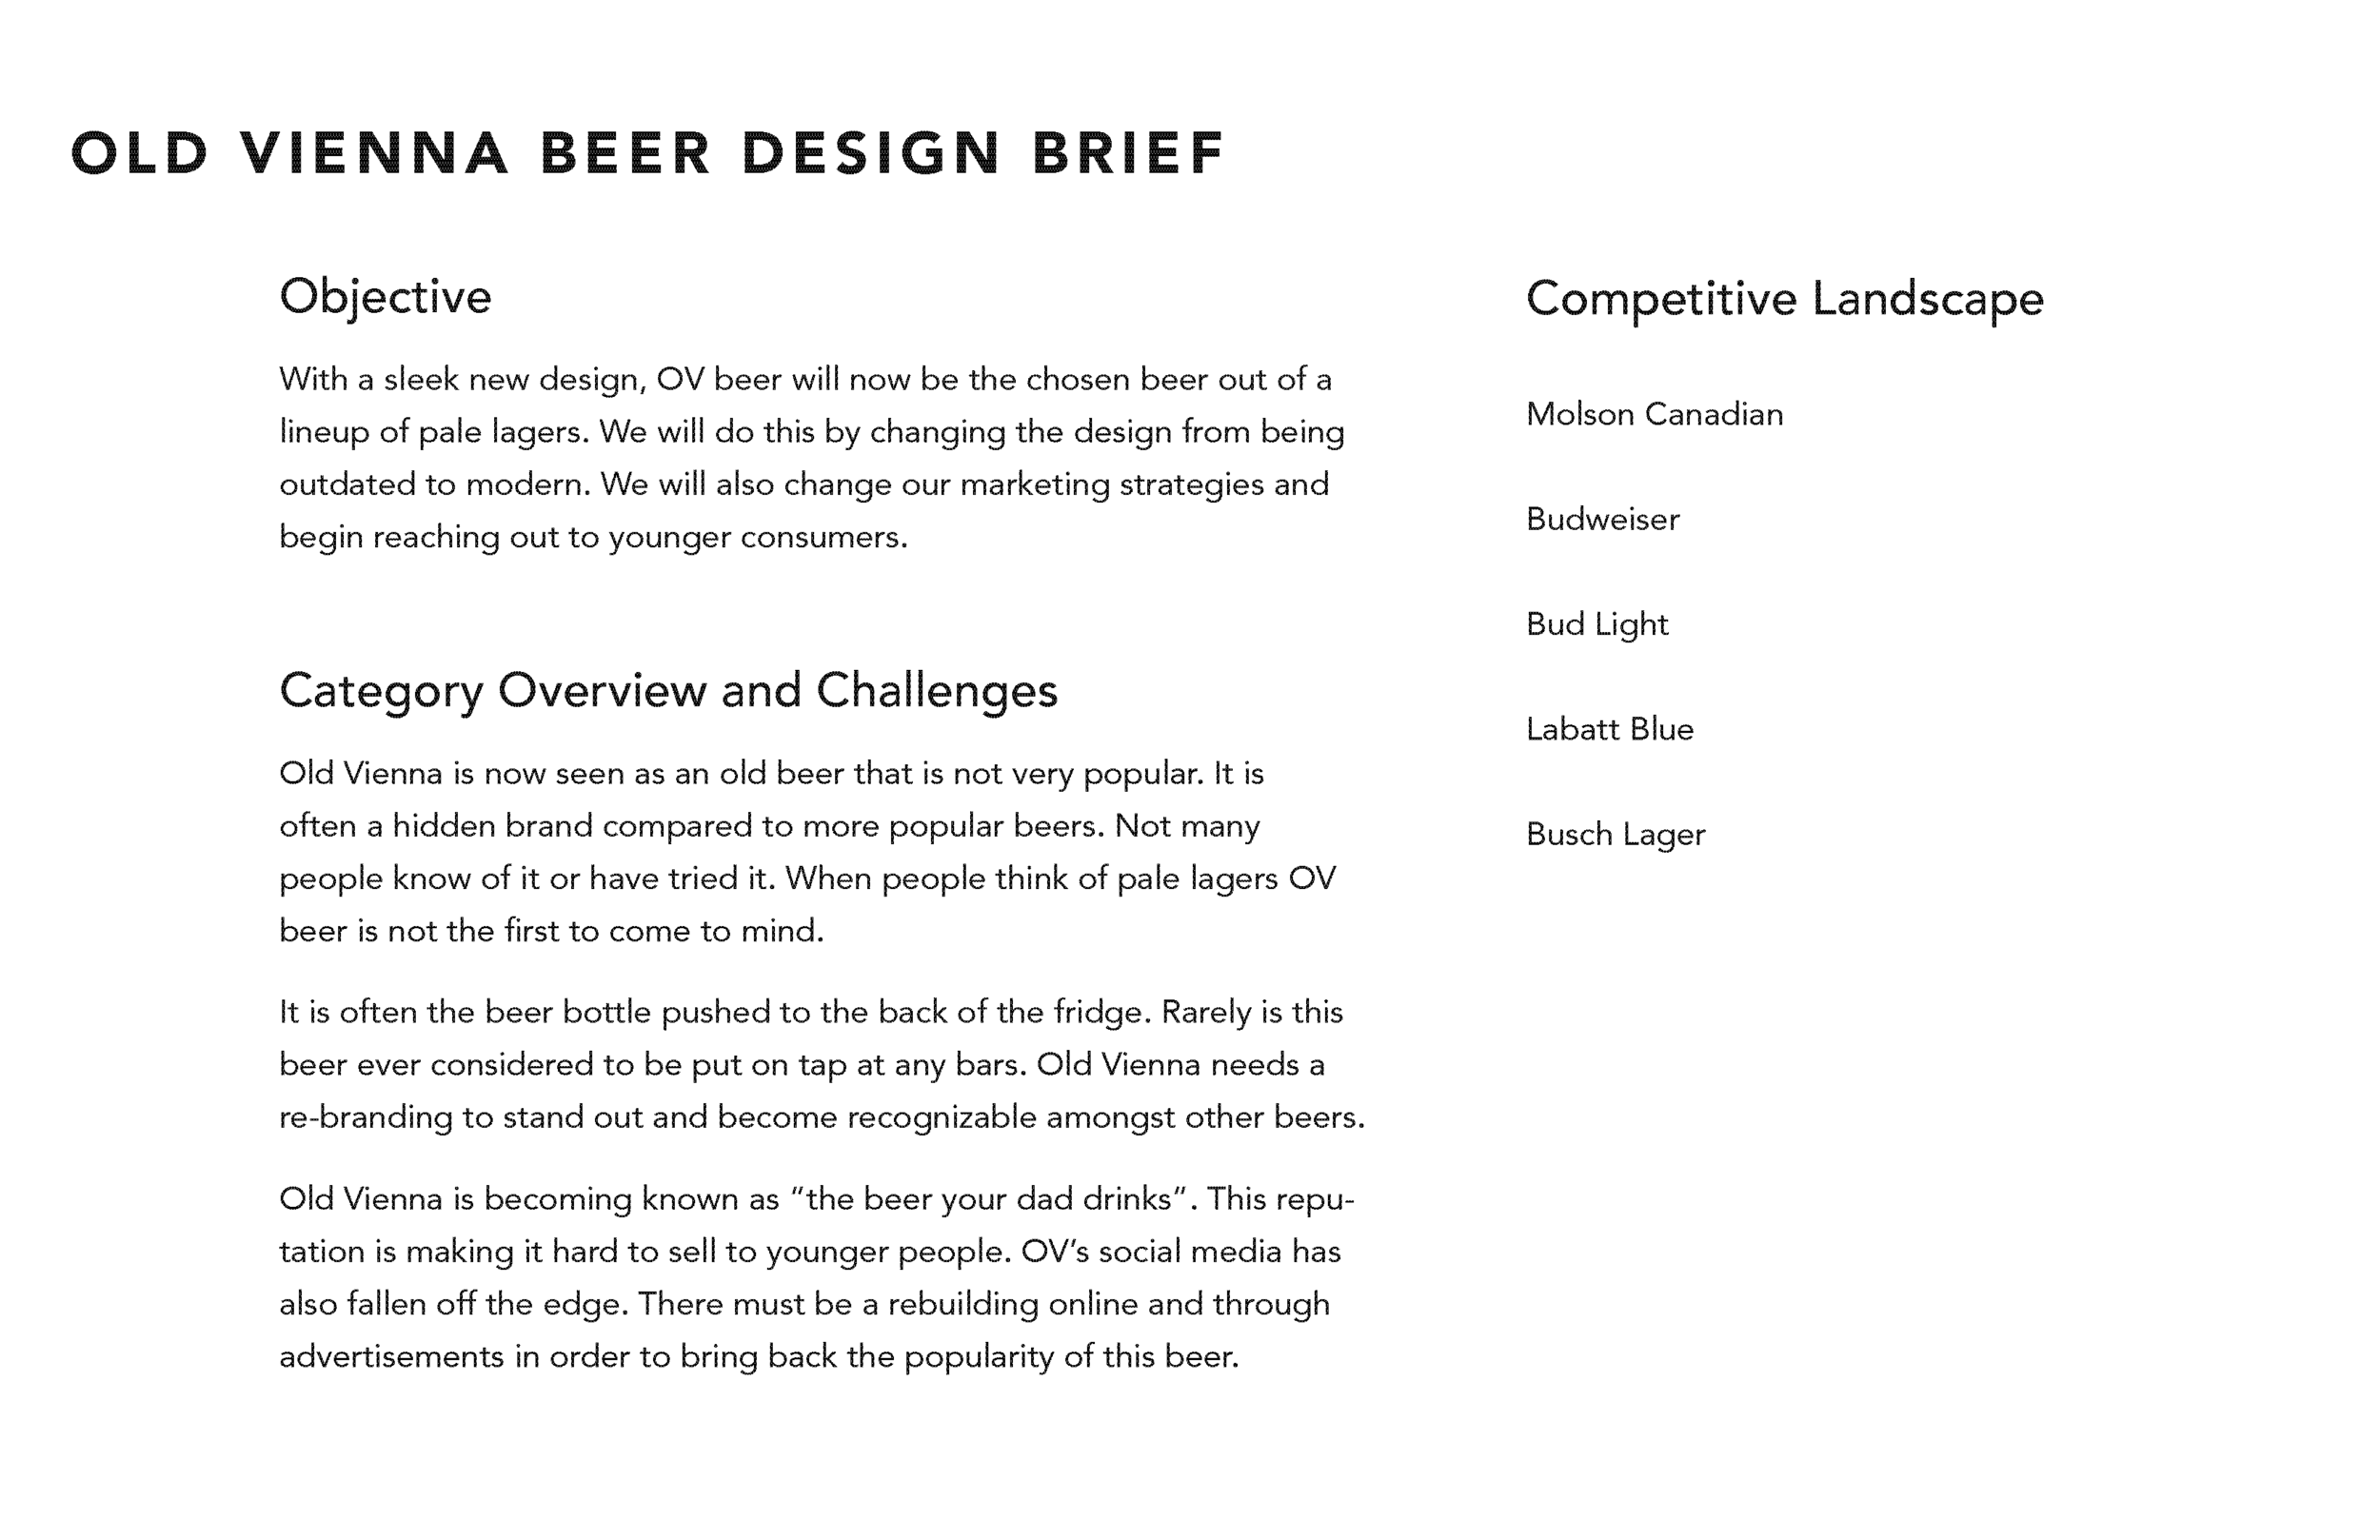 design brief final_Page_02.png